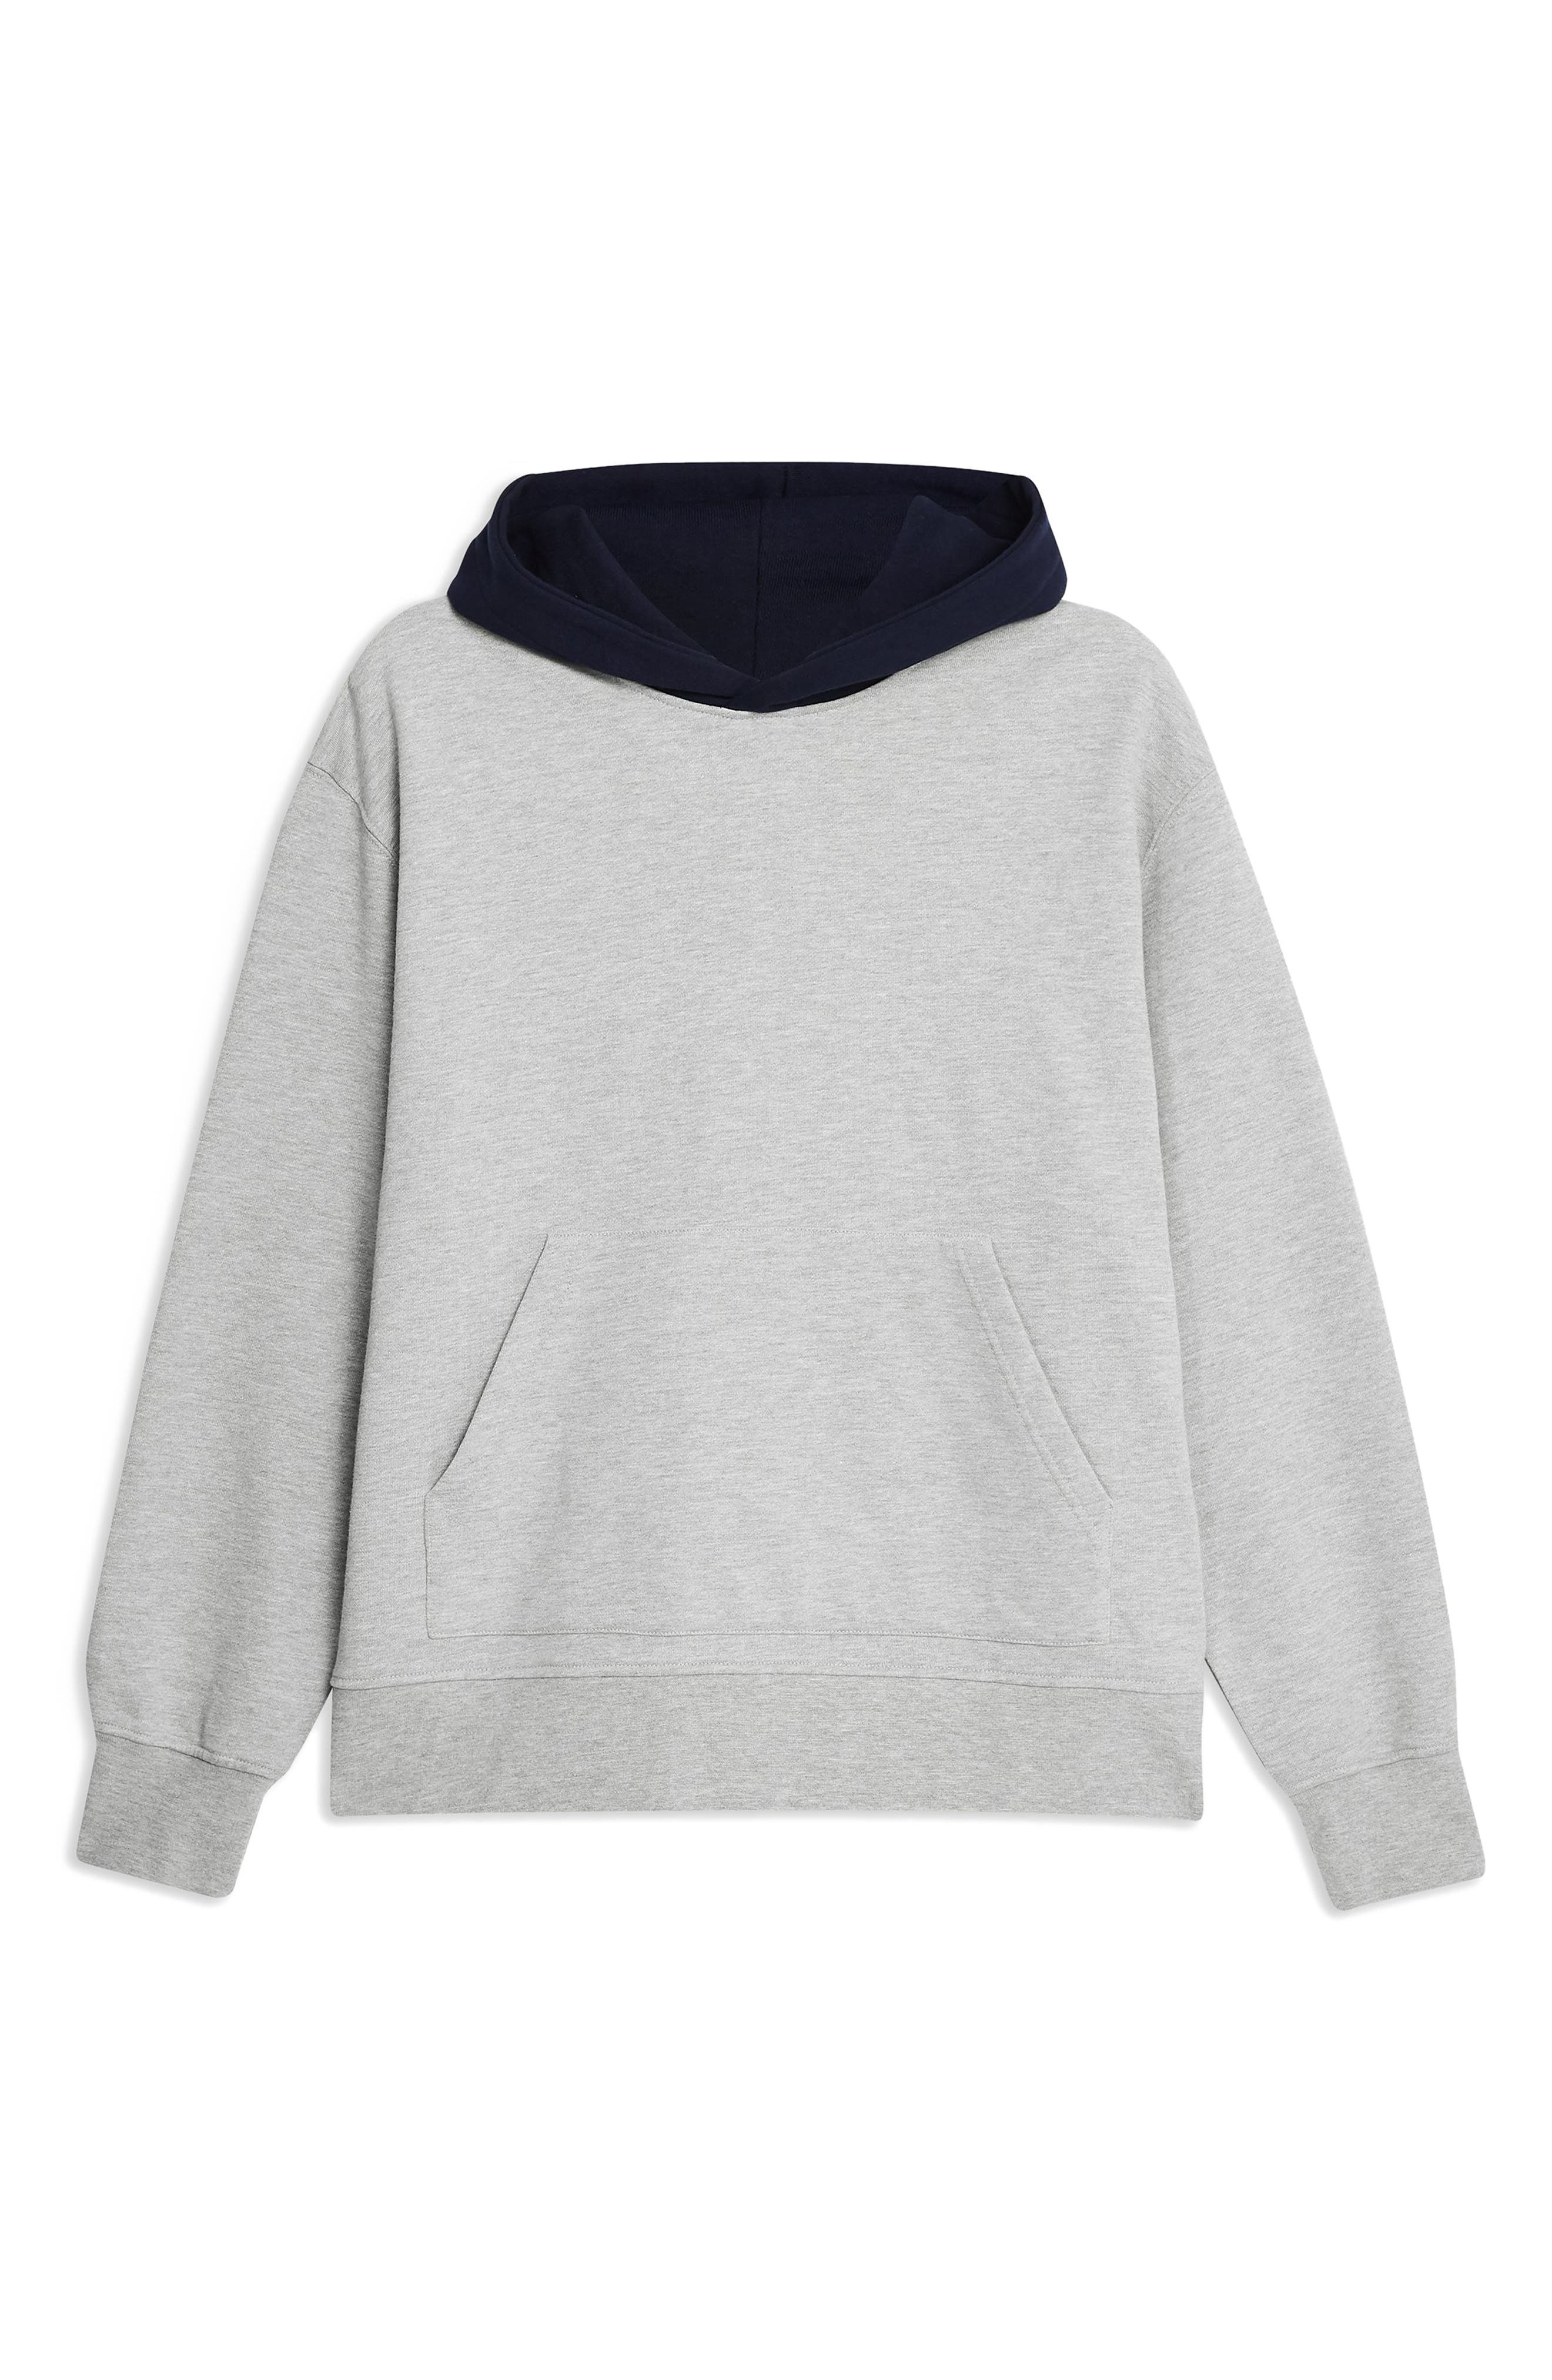 TOPMAN, Classic Contrast Hooded Sweatshirt, Alternate thumbnail 3, color, GREY